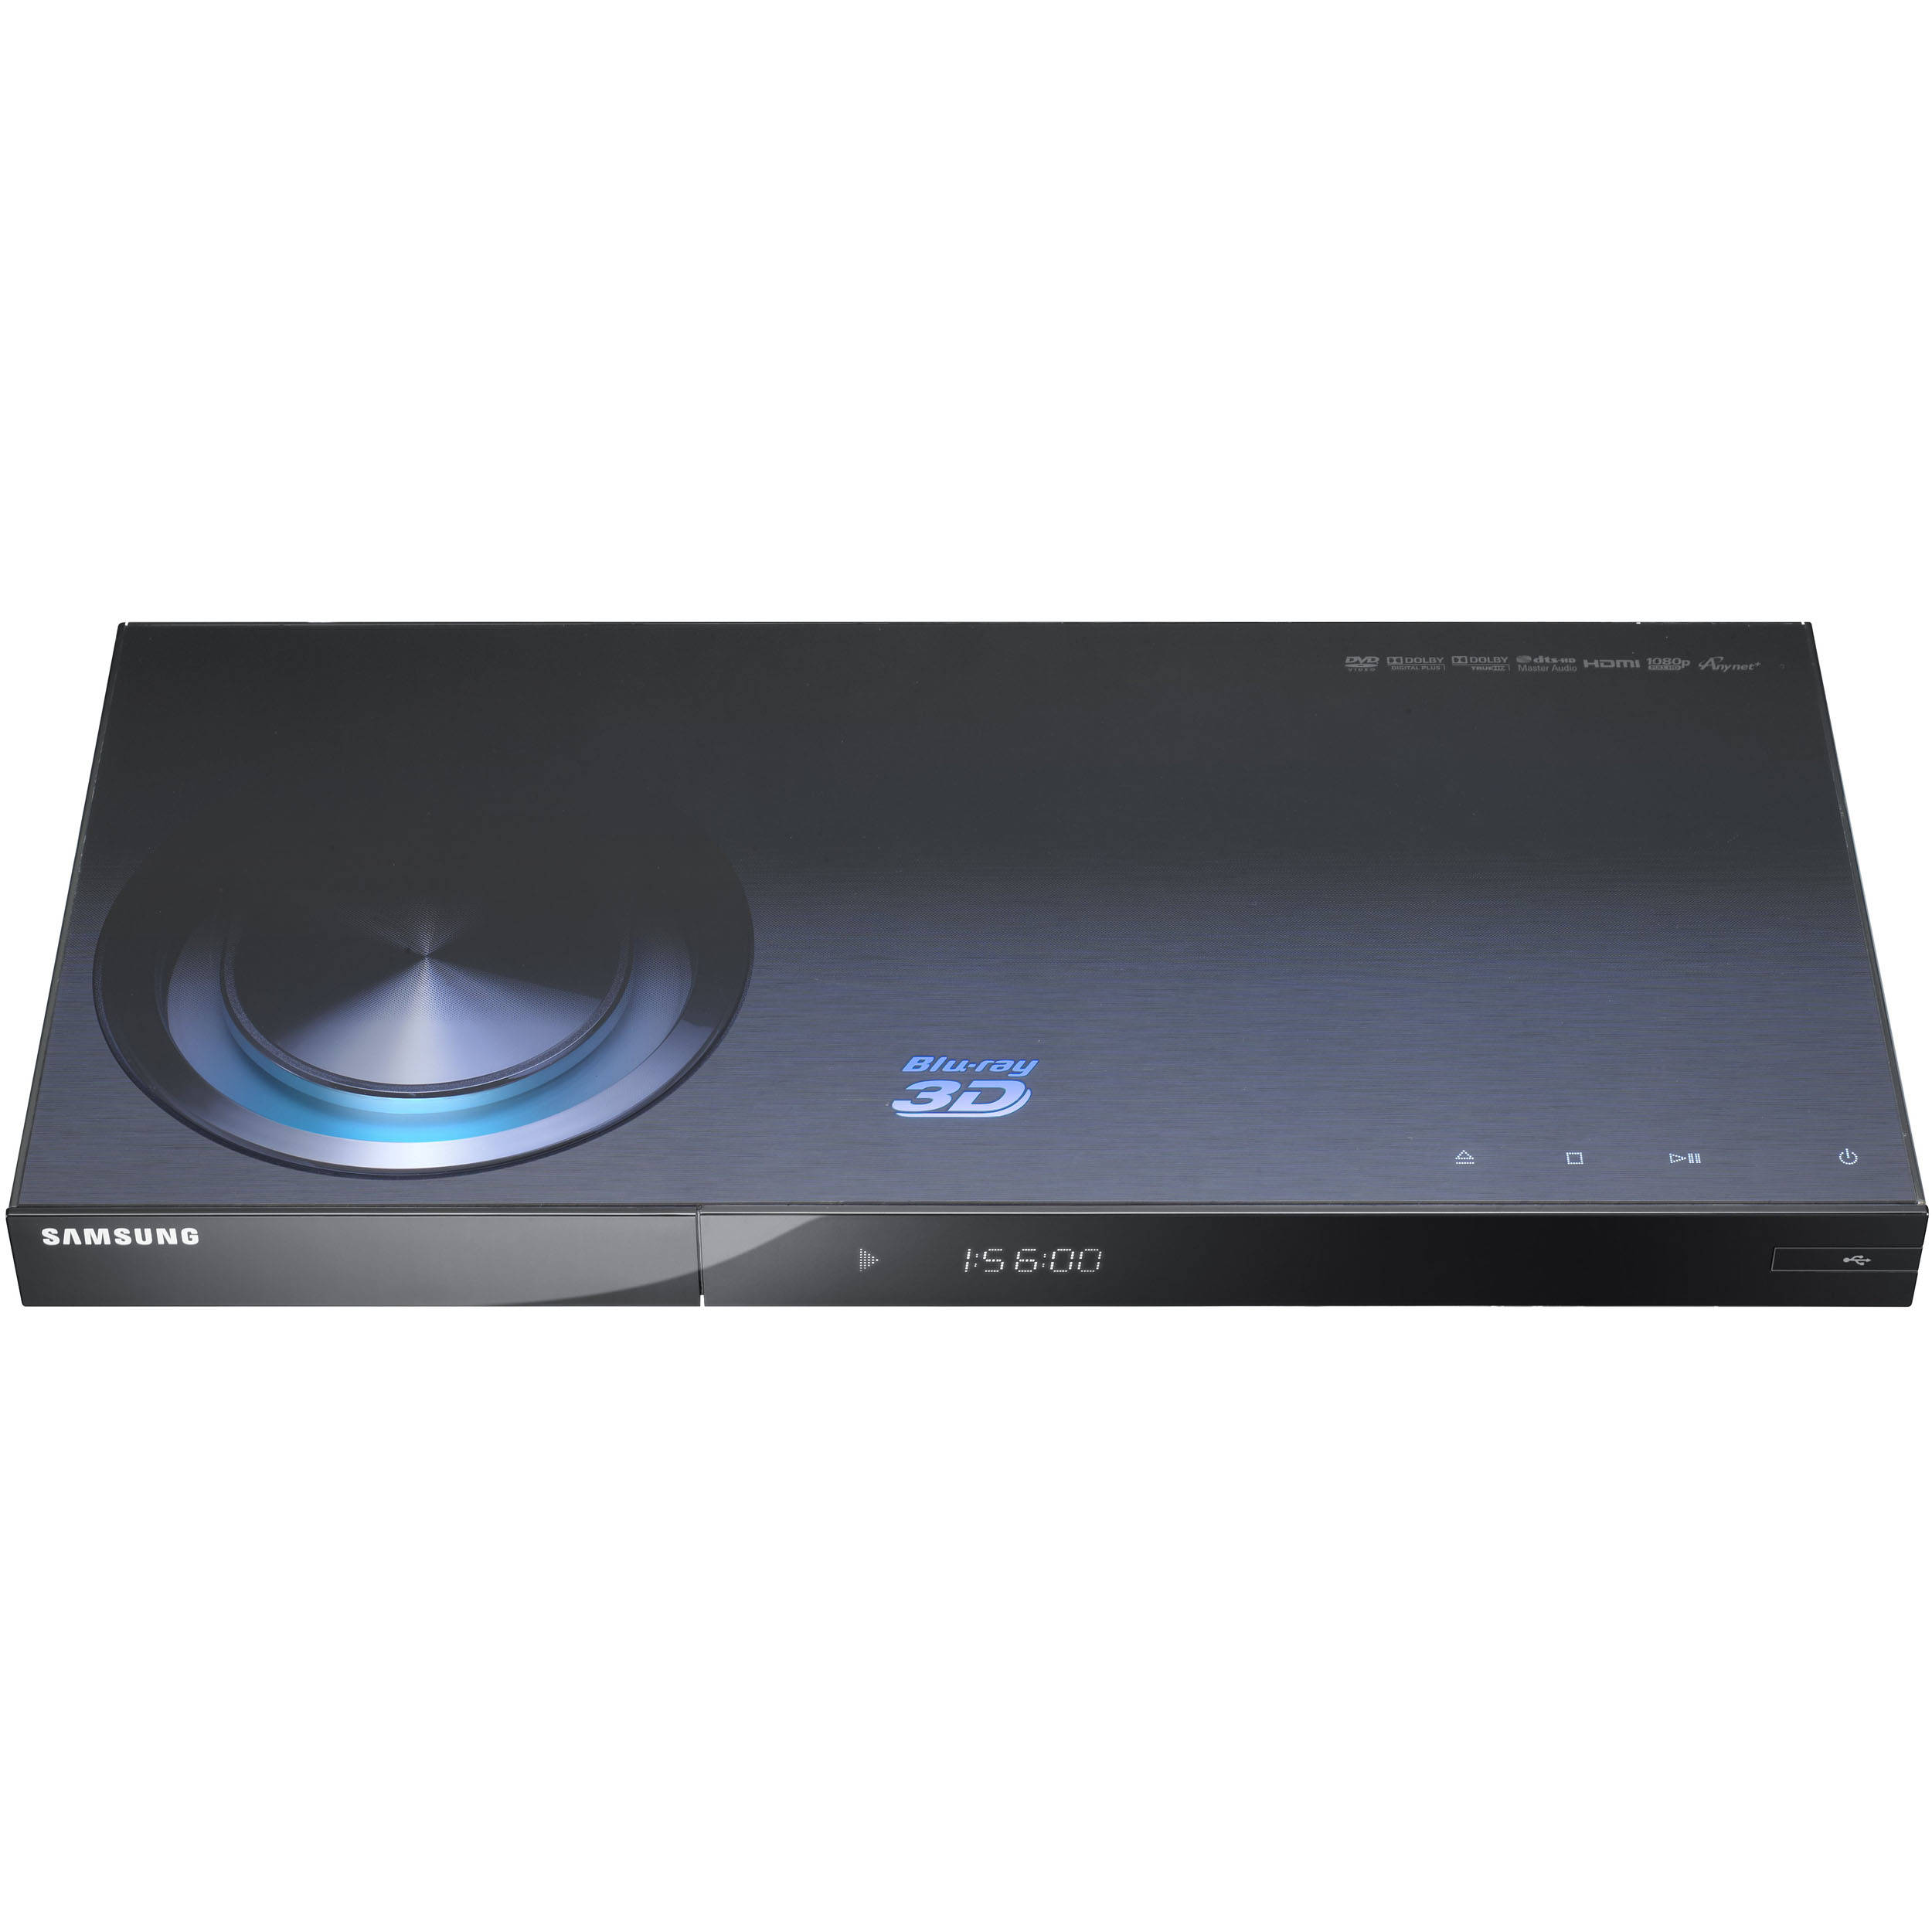 Samsung BD-C7900 Blu-ray 3D Player BD-C7900 B&H Photo Video